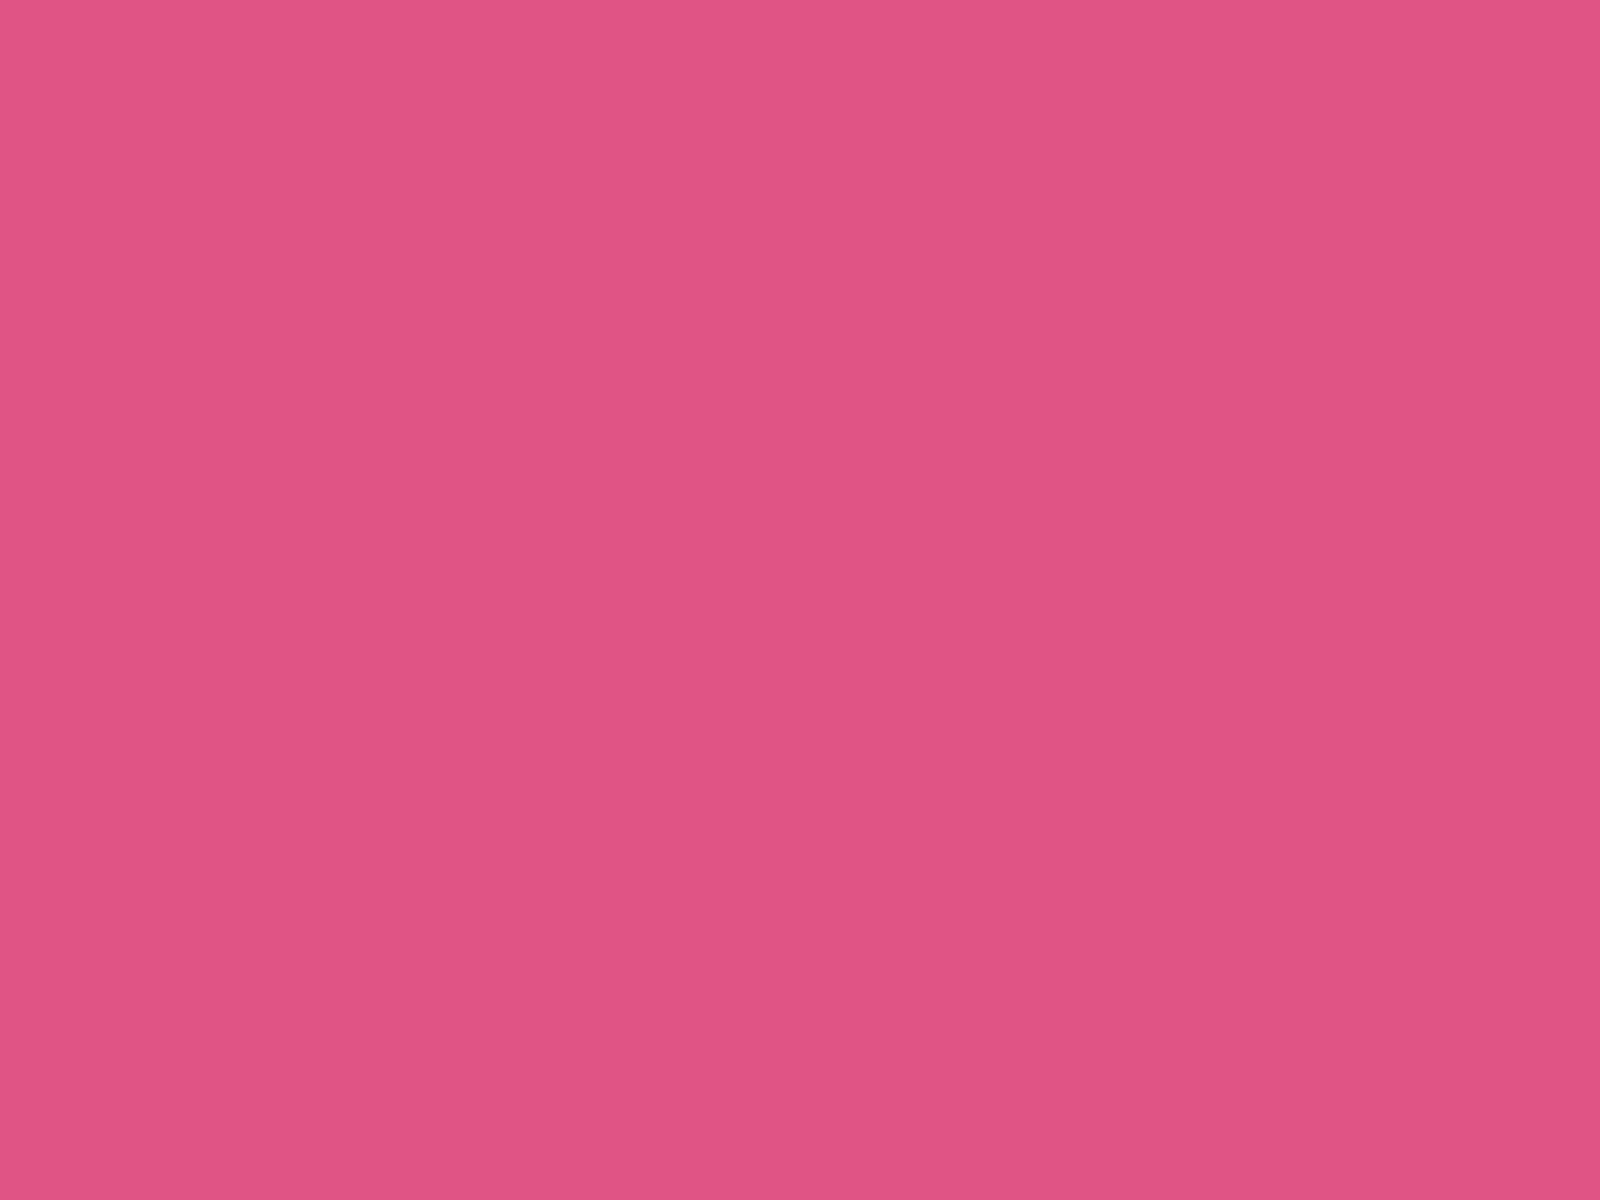 1600x1200 Fandango Pink Solid Color Background